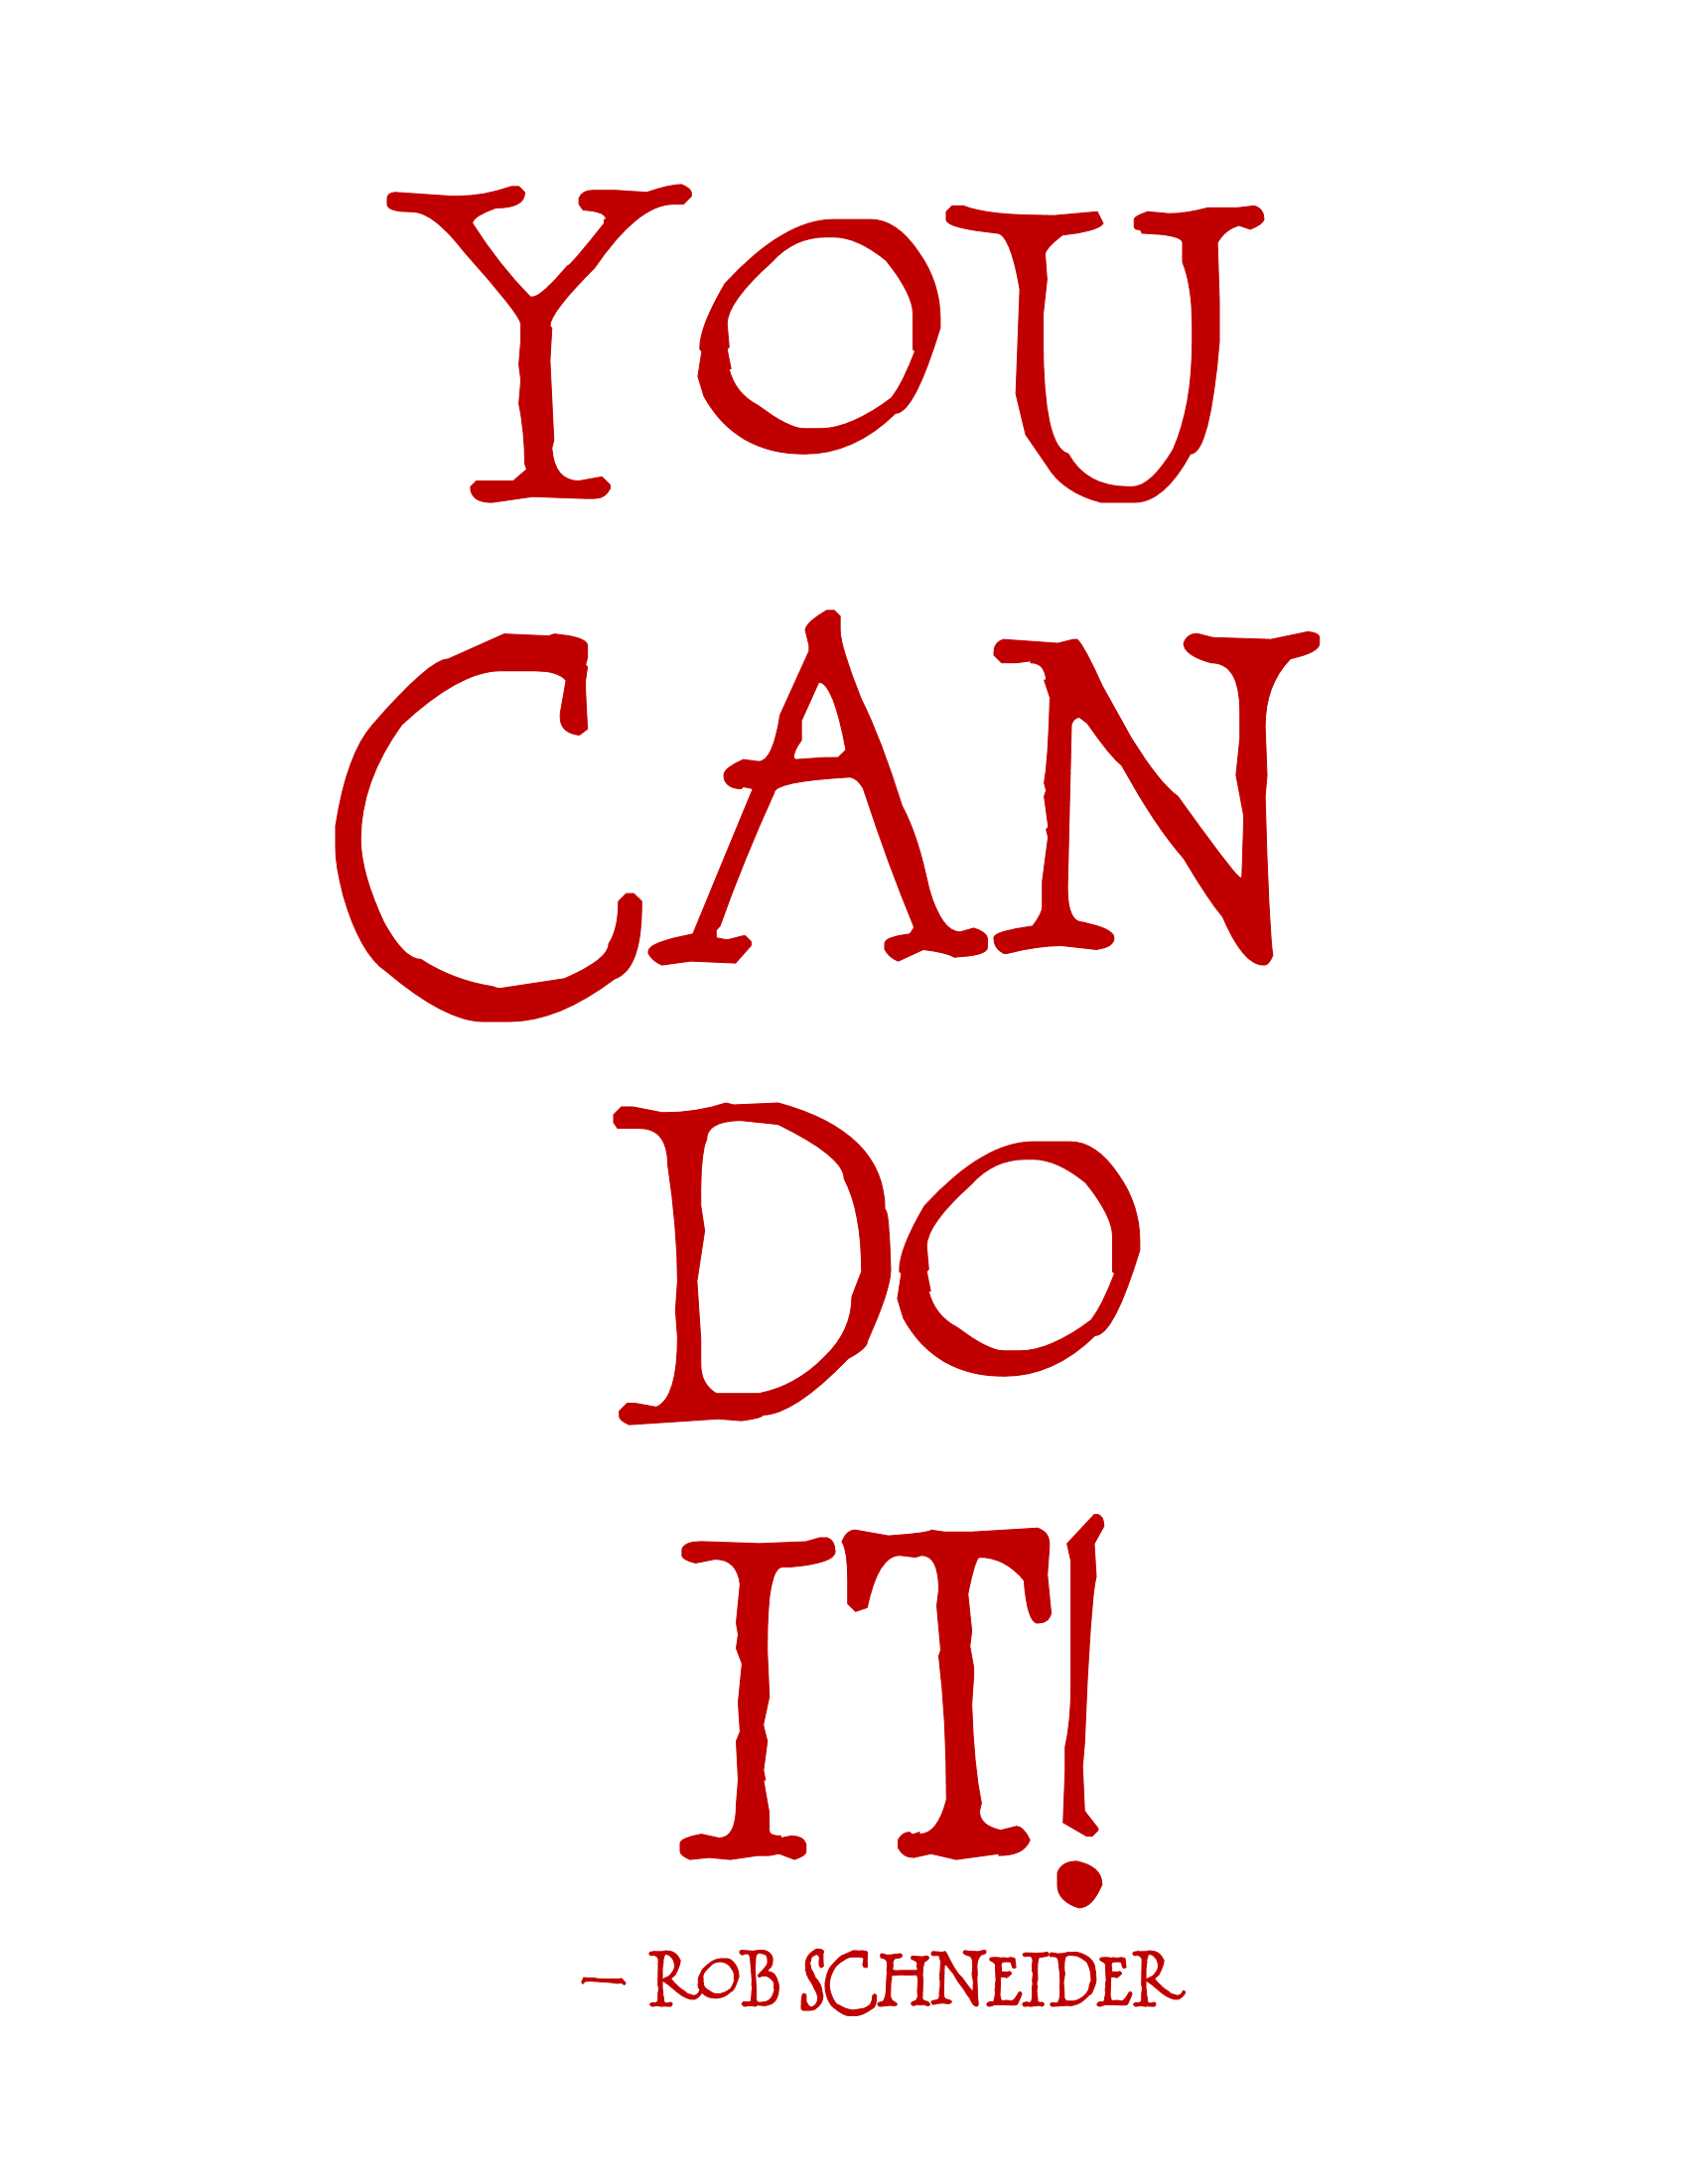 Famous quotes about 'You Can Do It' - QuotationOf . COM